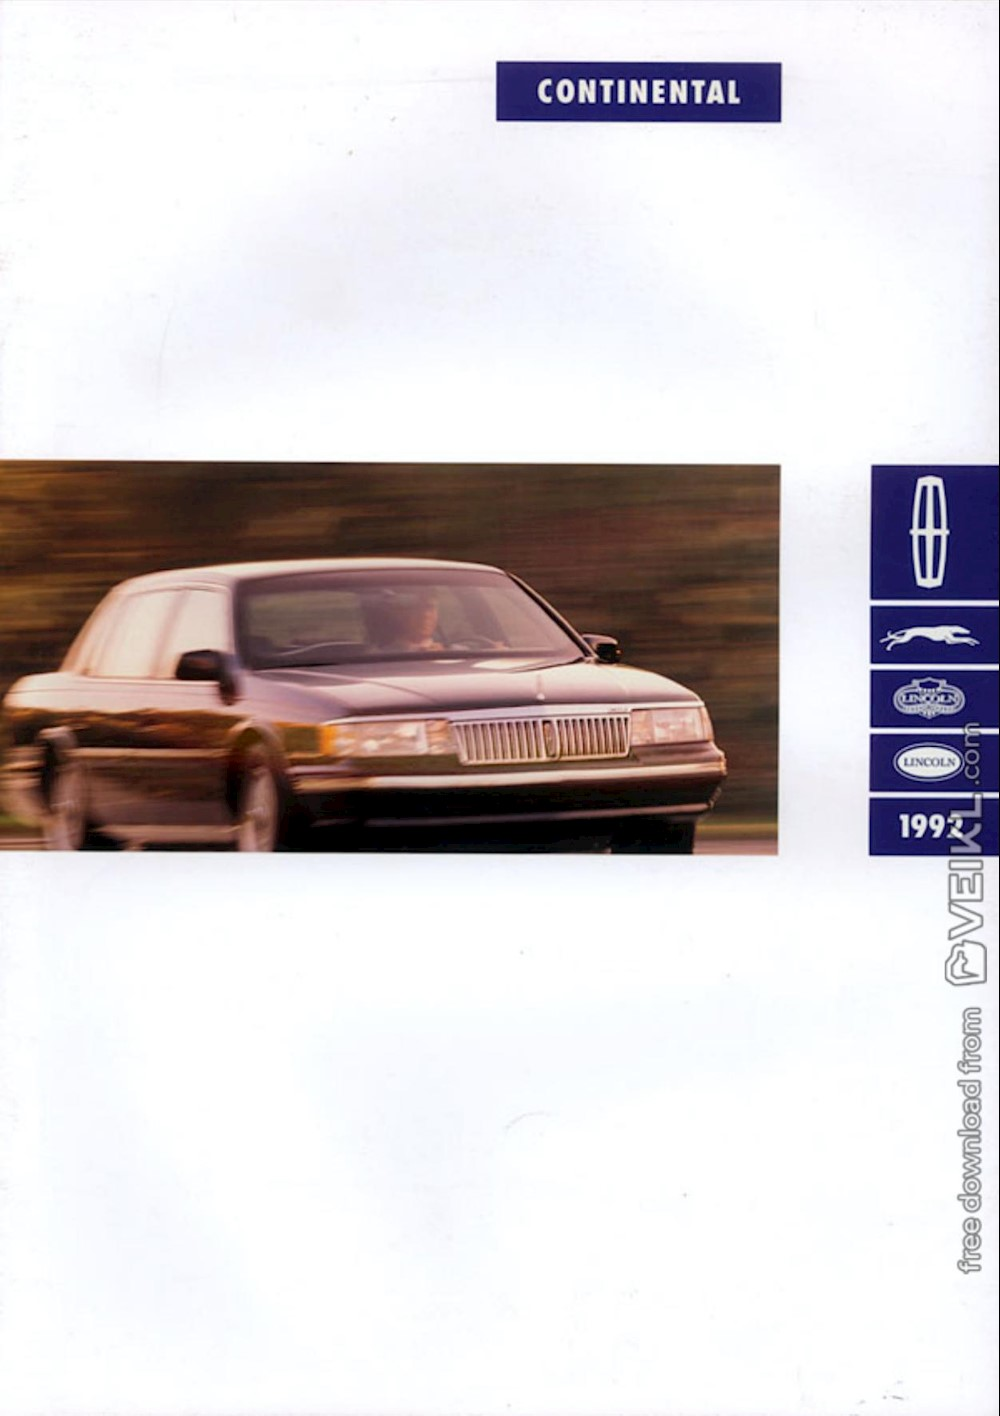 Lincoln Continental Brochure 1992 EN